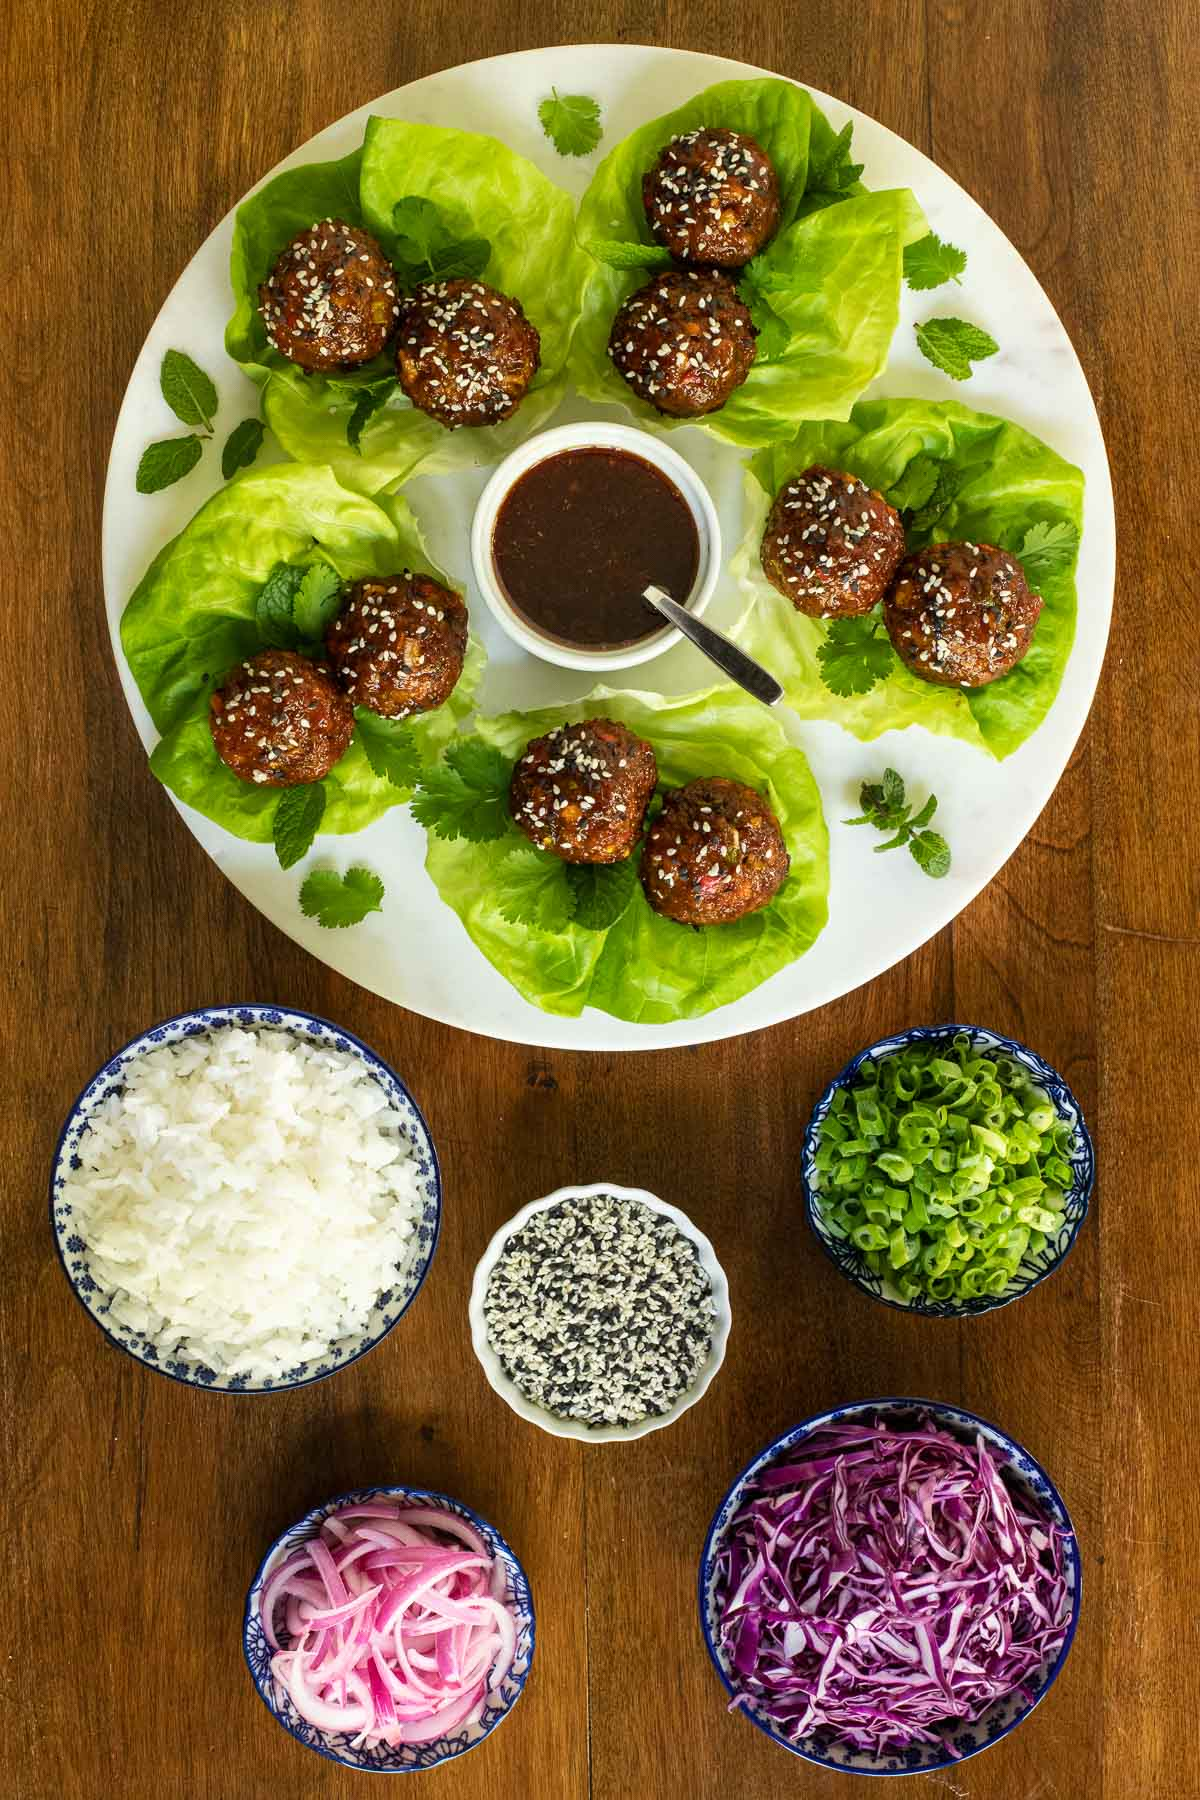 Overhead vertical photo of a platter of Korean Meatball Lettuce Wraps with bowls of the individual foods that go in the wraps including, pickled onions, rice, scallions, shredded purple cabbage and seeds.